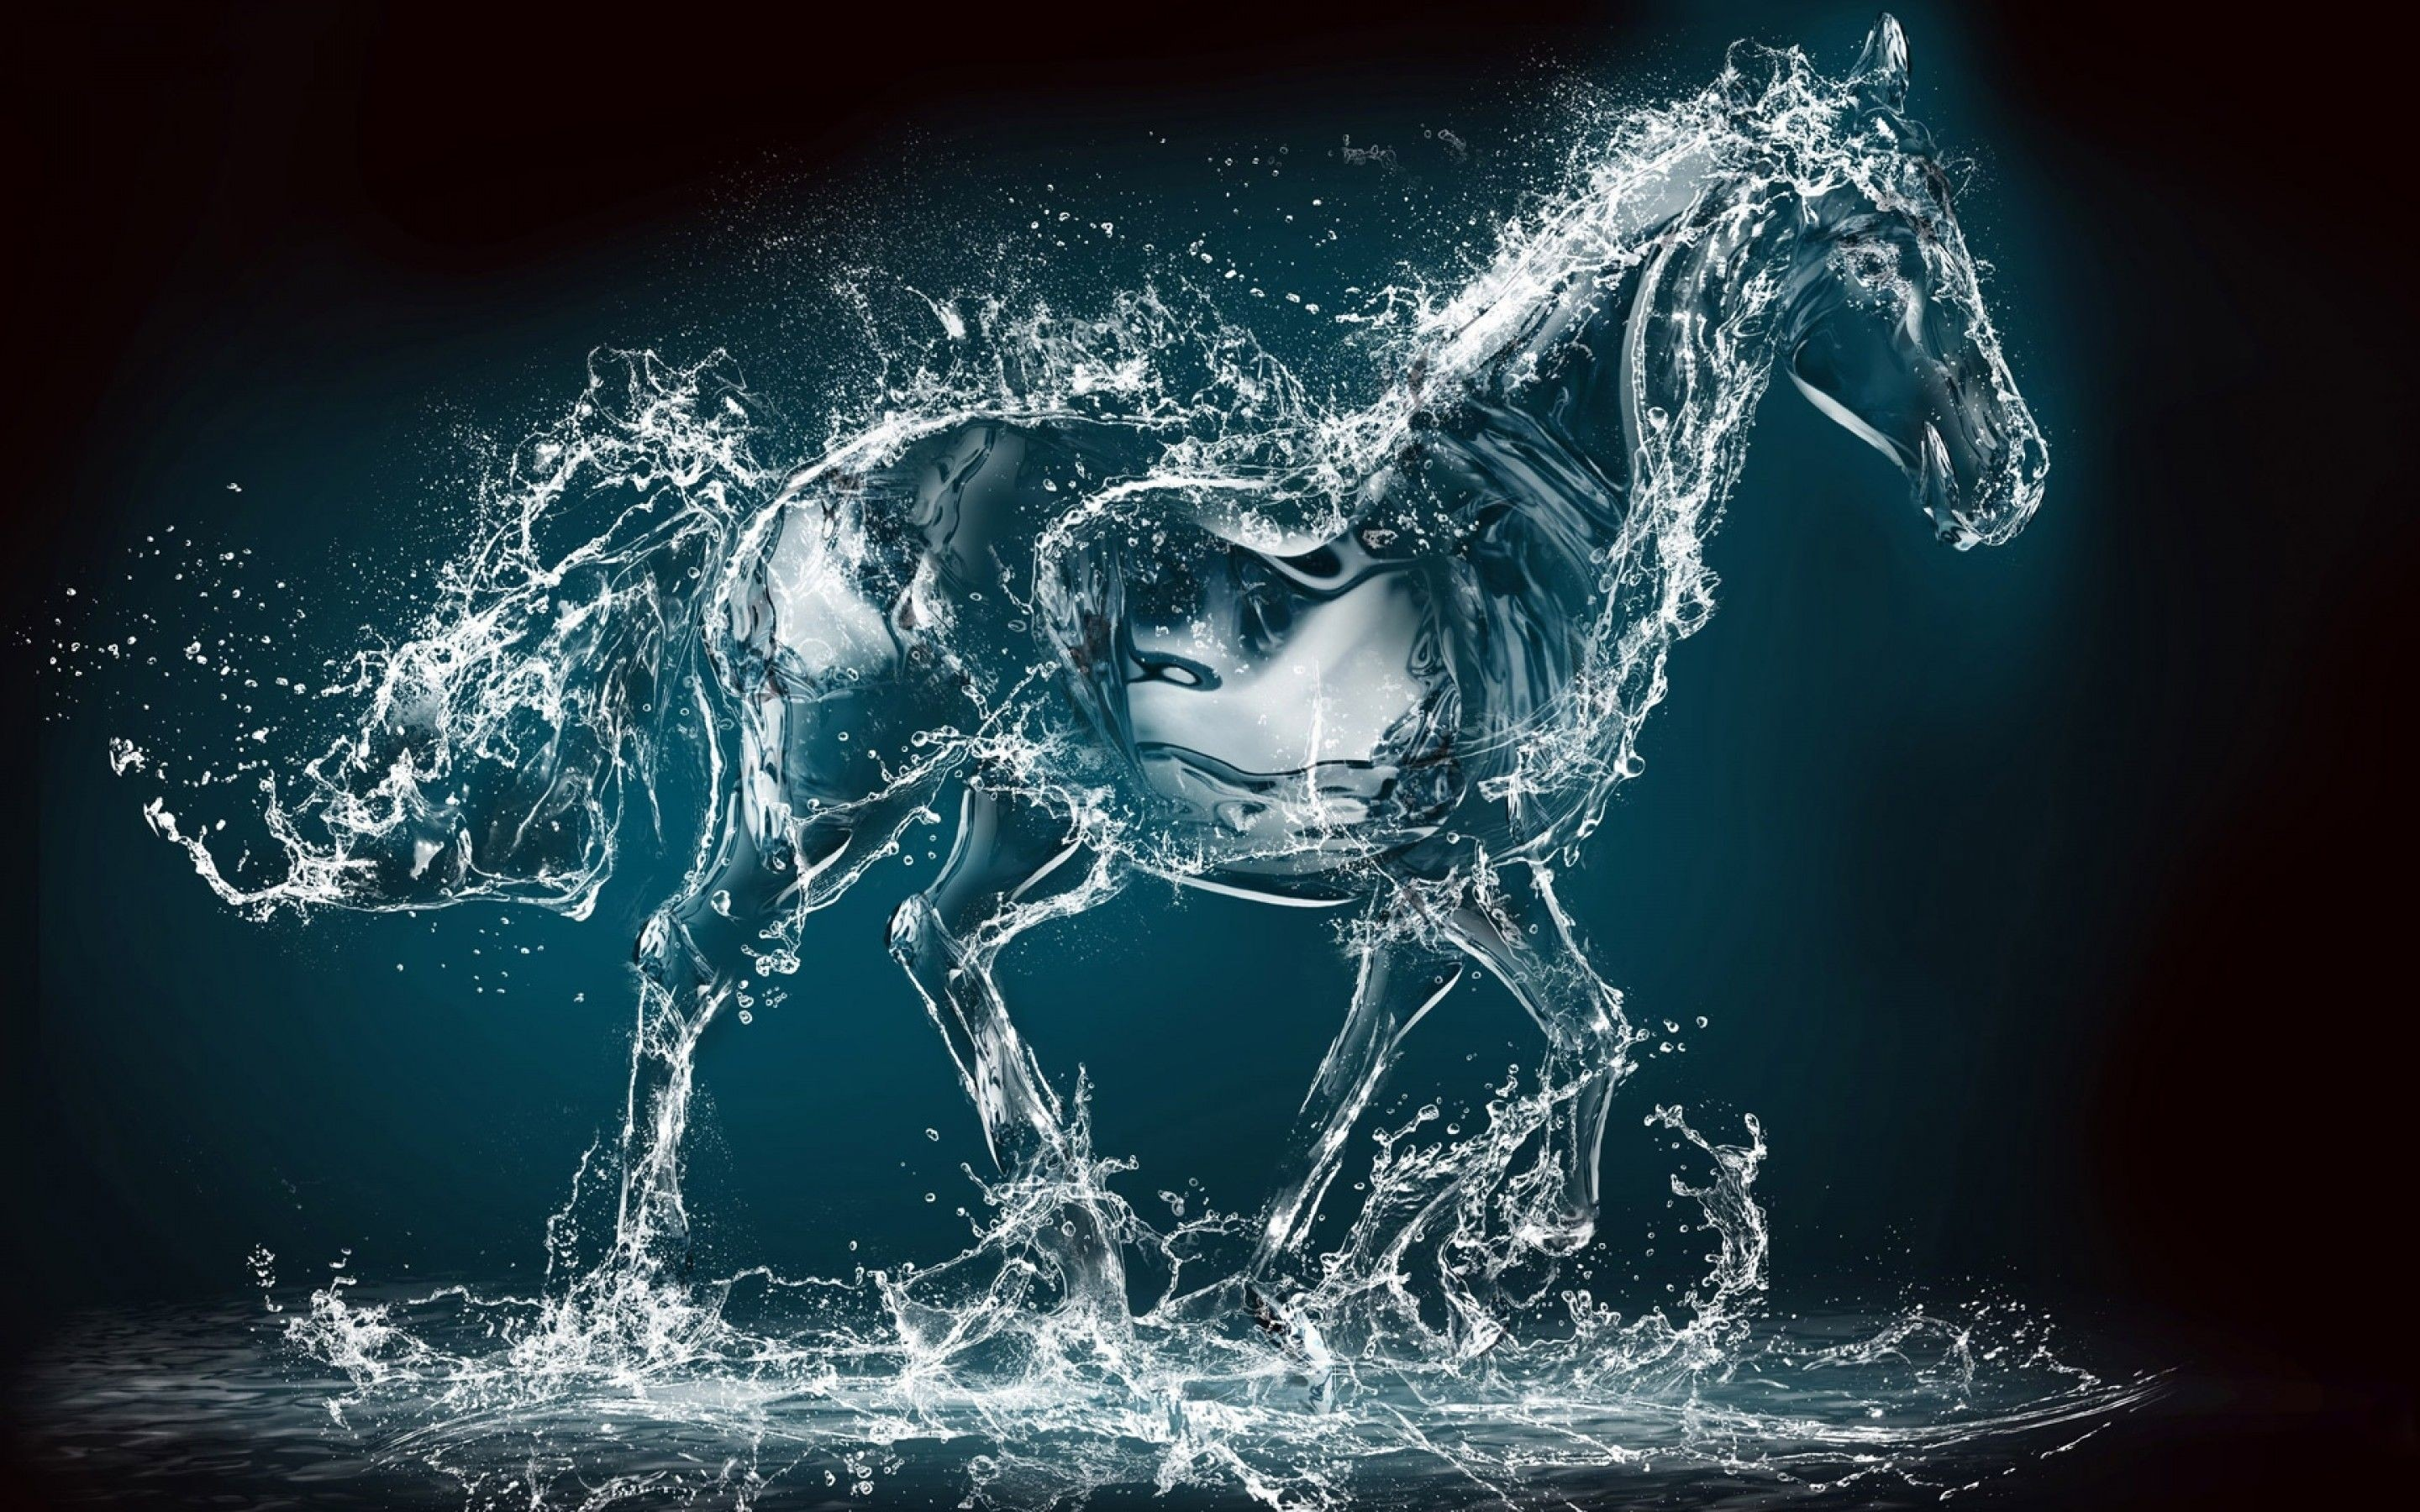 2880x1800 Crisp Hd Rainbow Animals Wallpapers - Most Amazing Painting Ever Water Art  3D Horse HD wallpaper